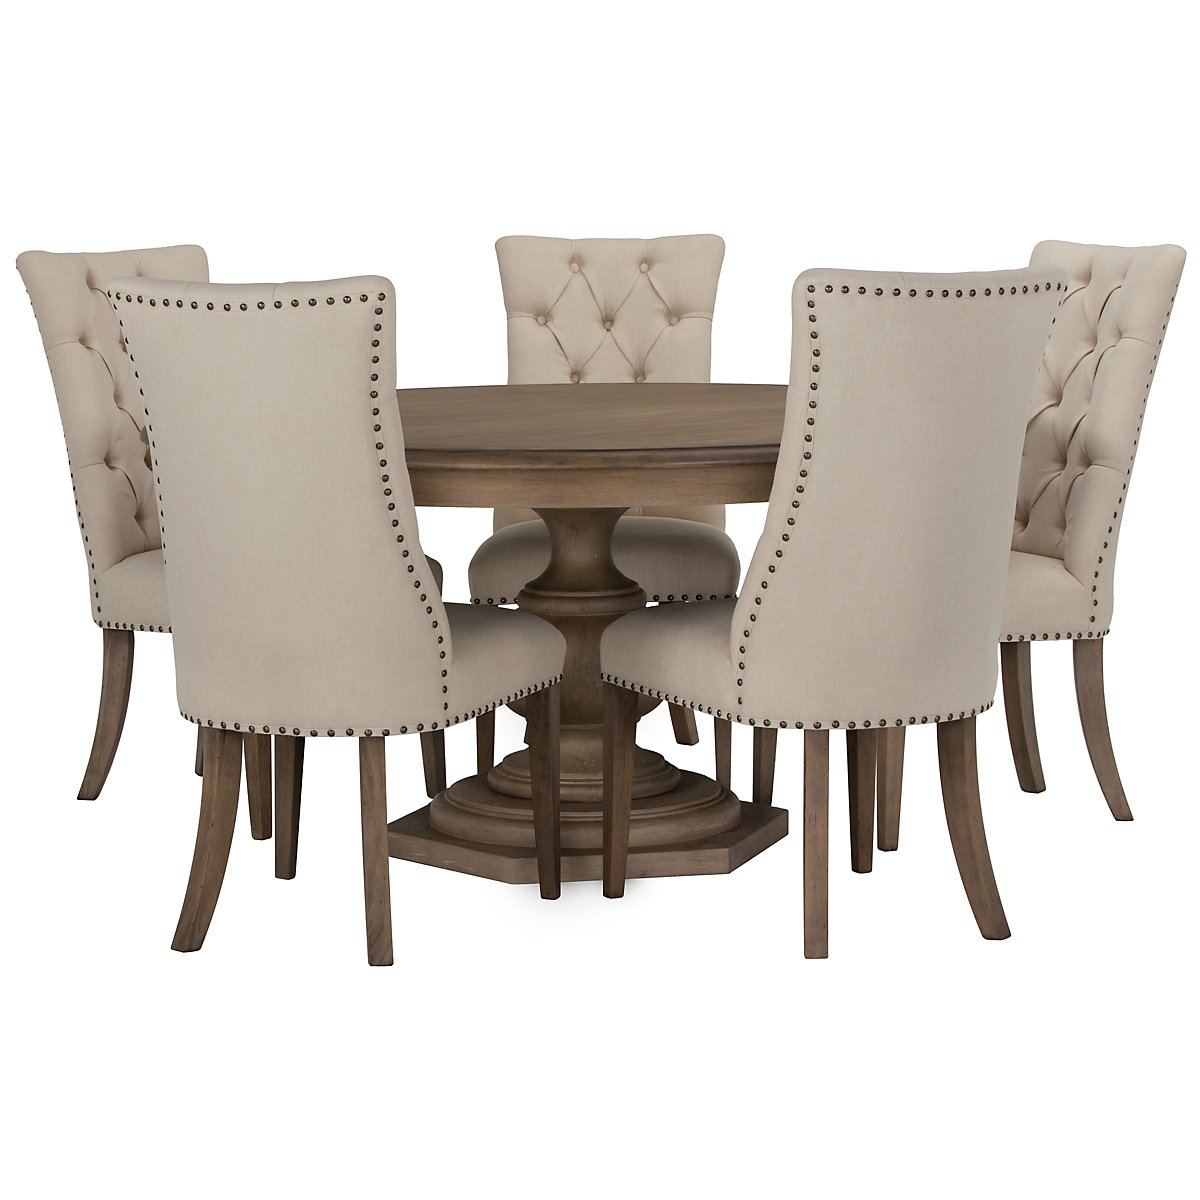 City furniture haddie light tone round table 4 upholstered chairs Round dining table set